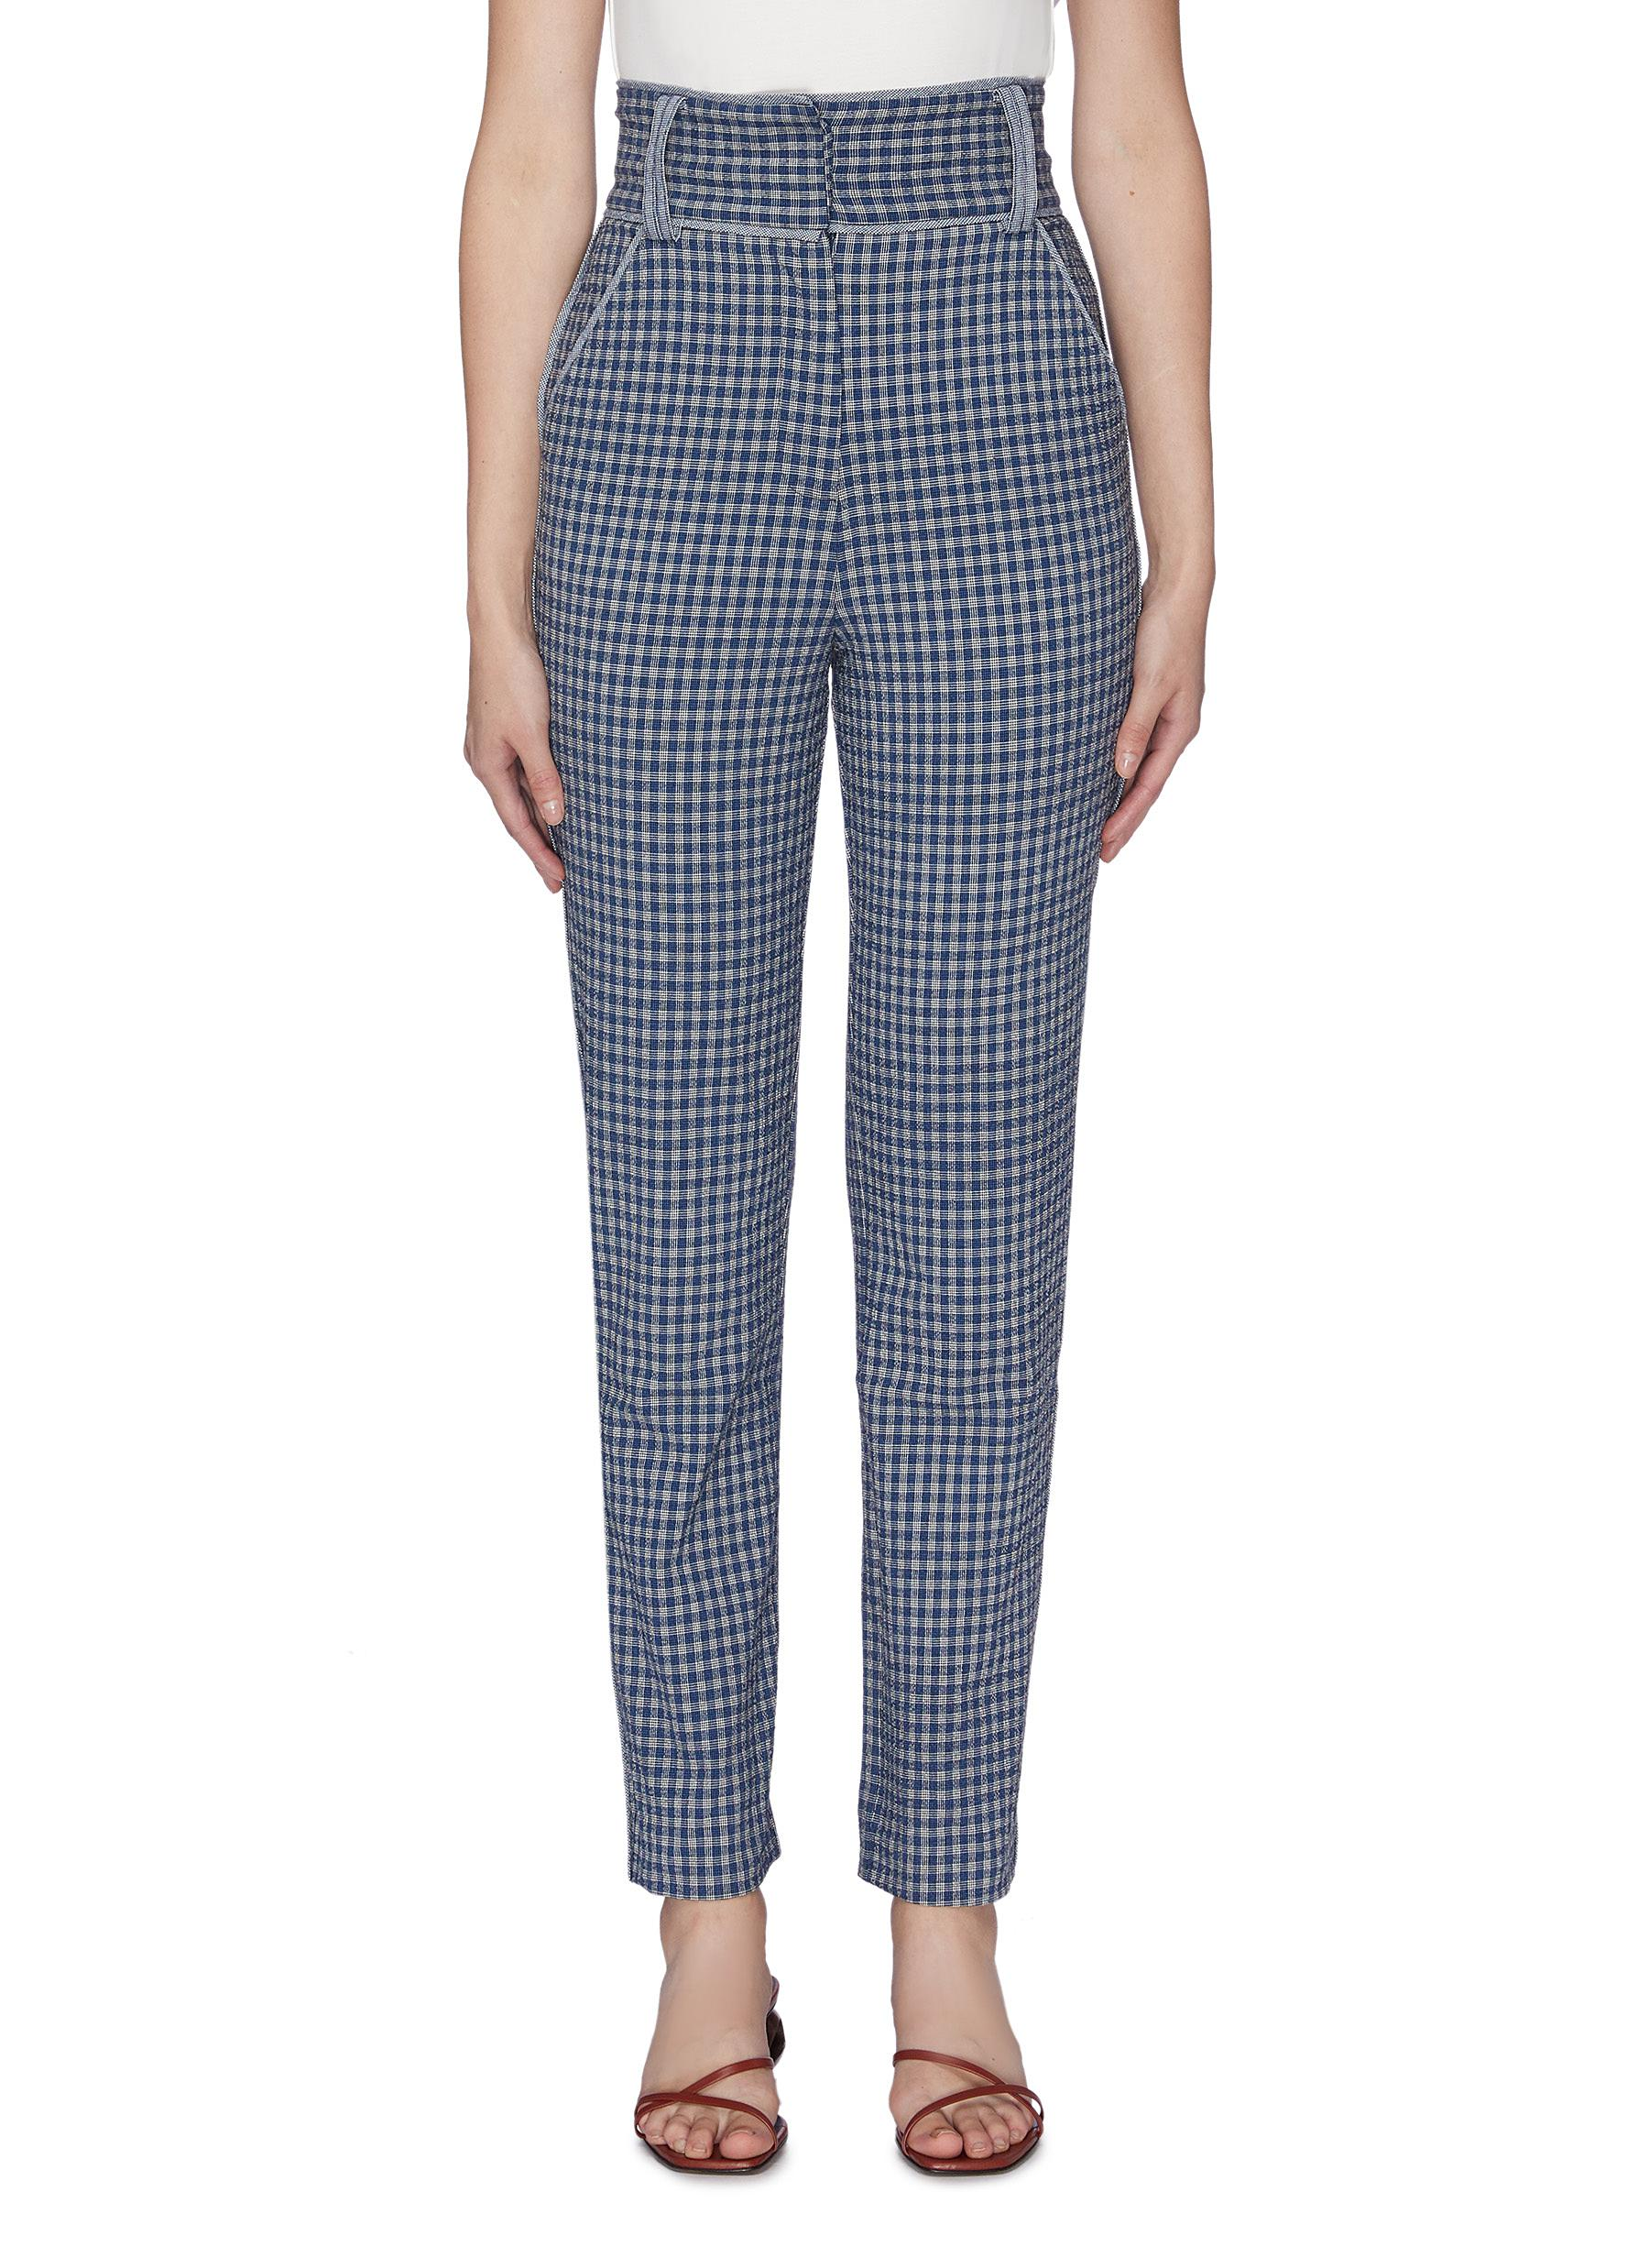 Levels gingham check pants by C/Meo Collective